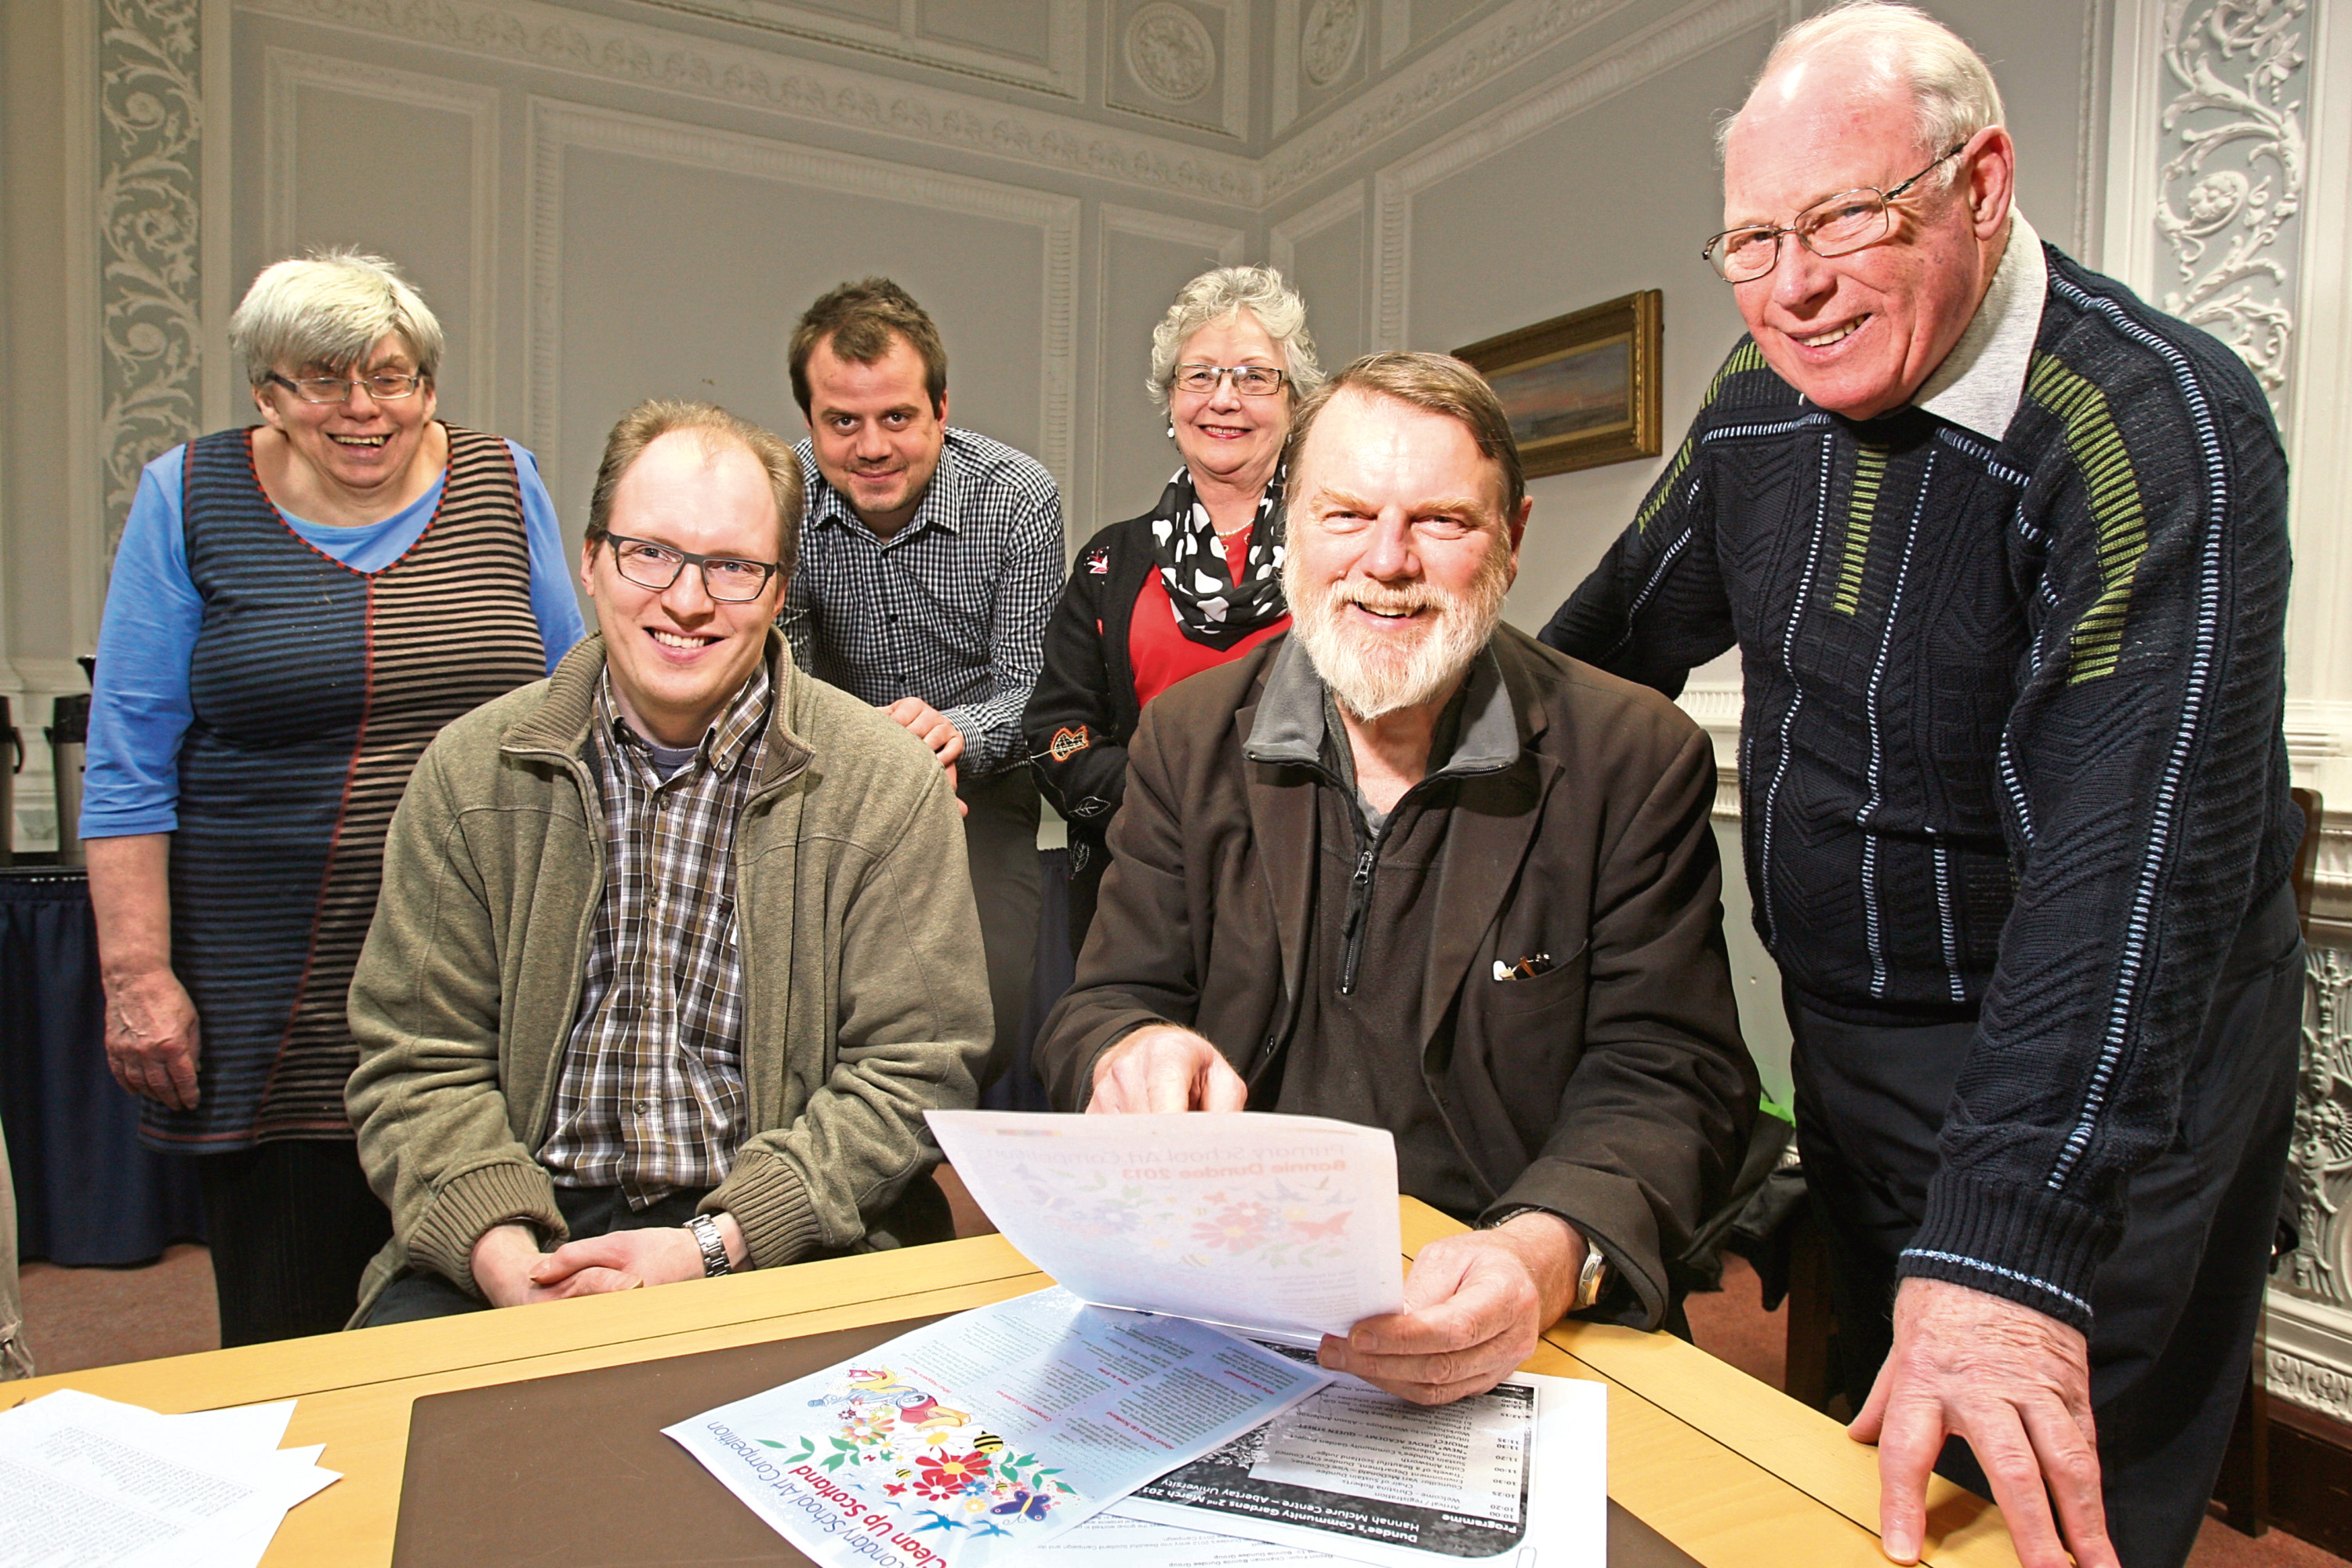 Alan Young, far right, at the AGM of Bonnie Dundee